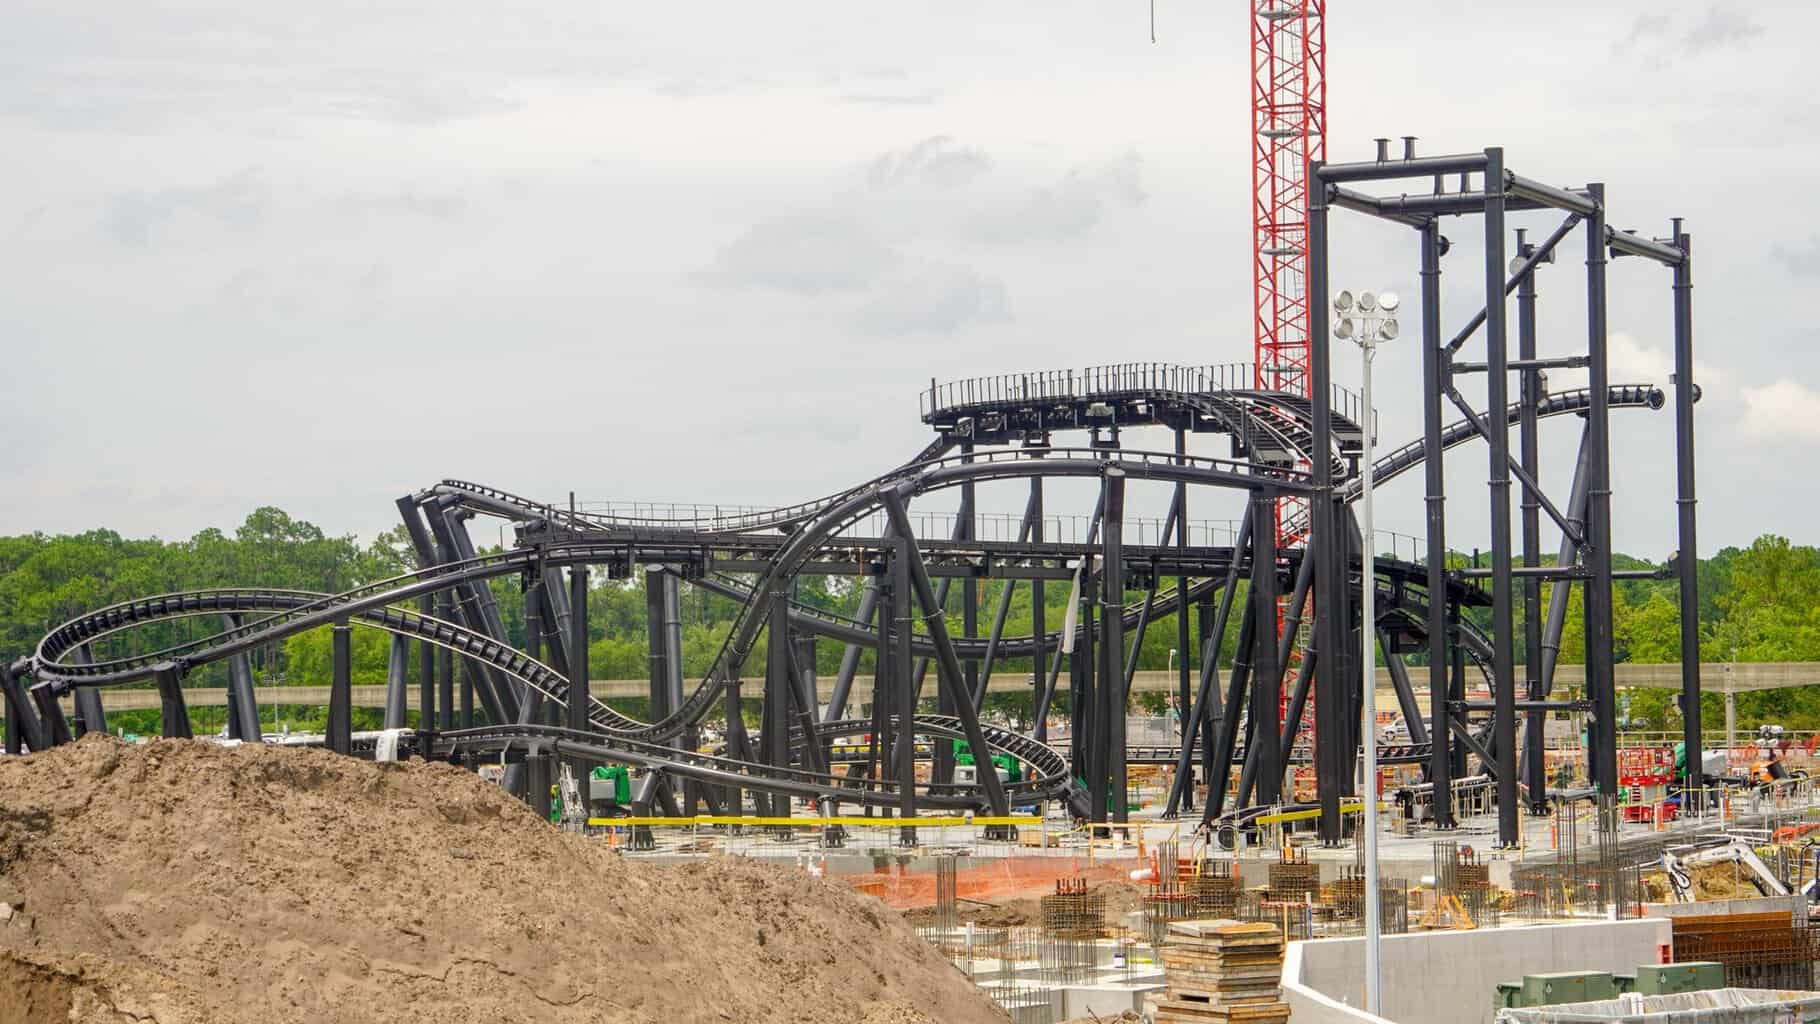 TRON Roller Coaster Construction Update Track almost finished